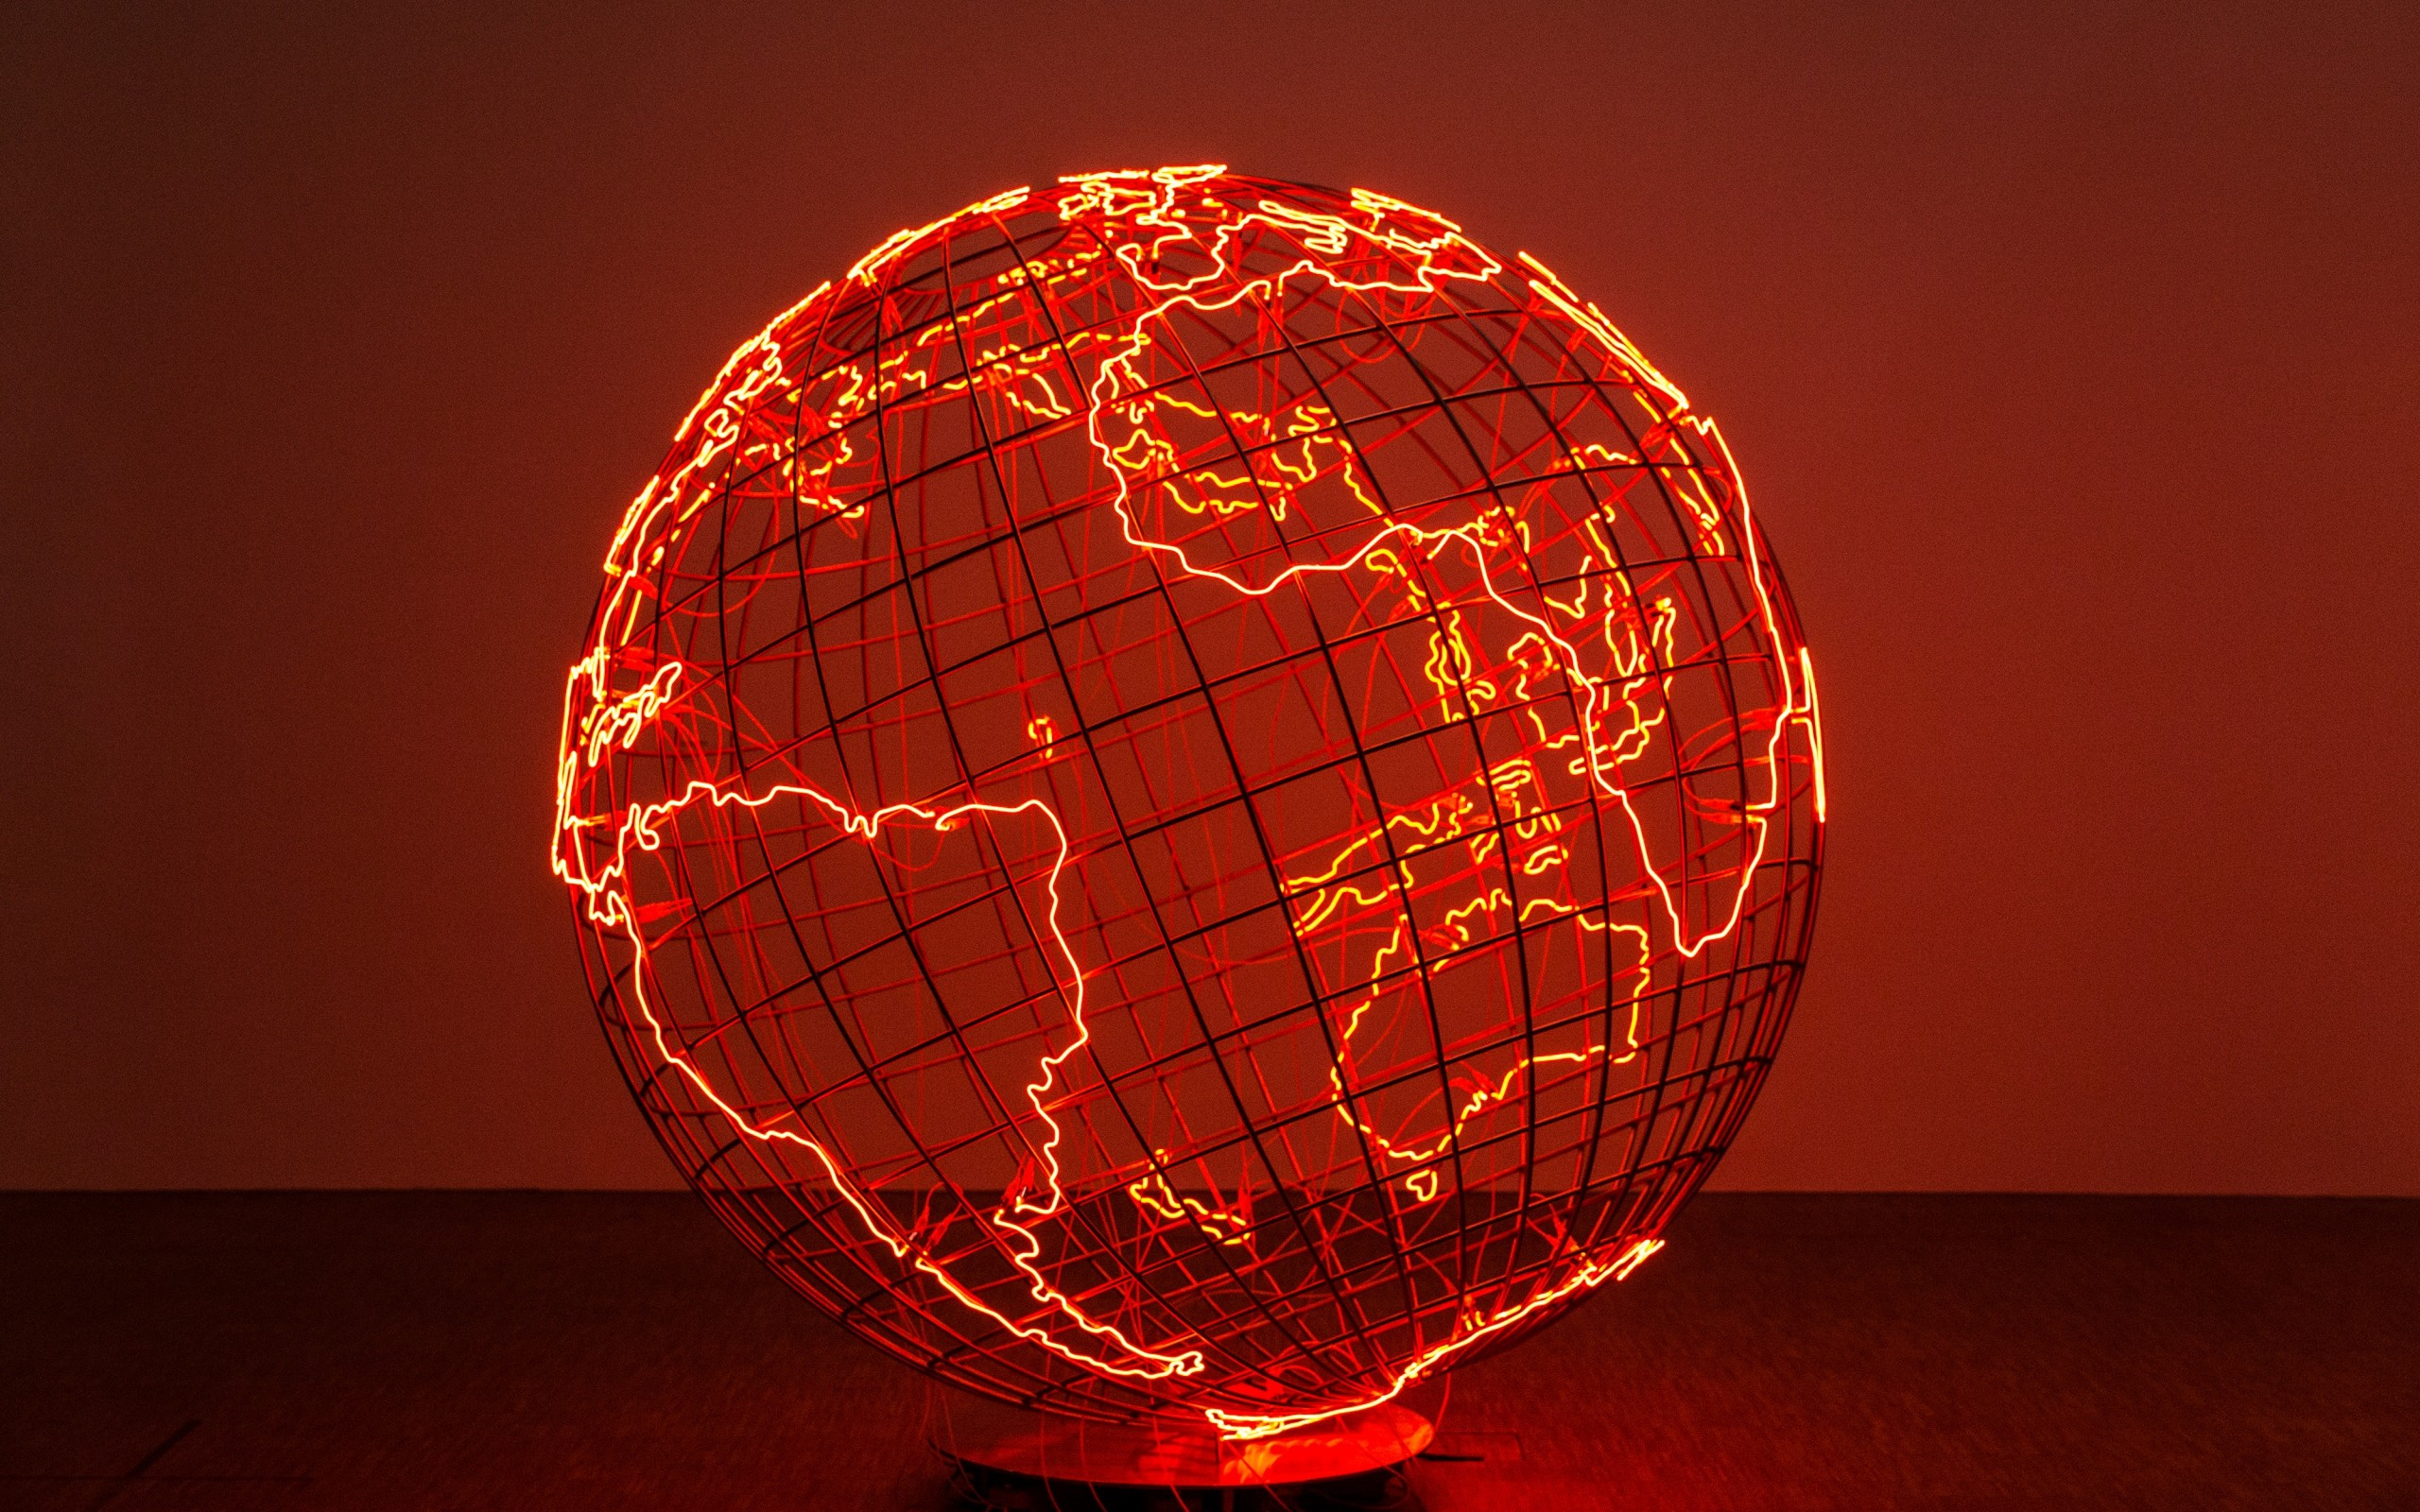 General 2560x1600 planet Earth artwork wire lights neon globes nets continents Europe Africa South America Australia Antarctica simple background electricity sphere world map